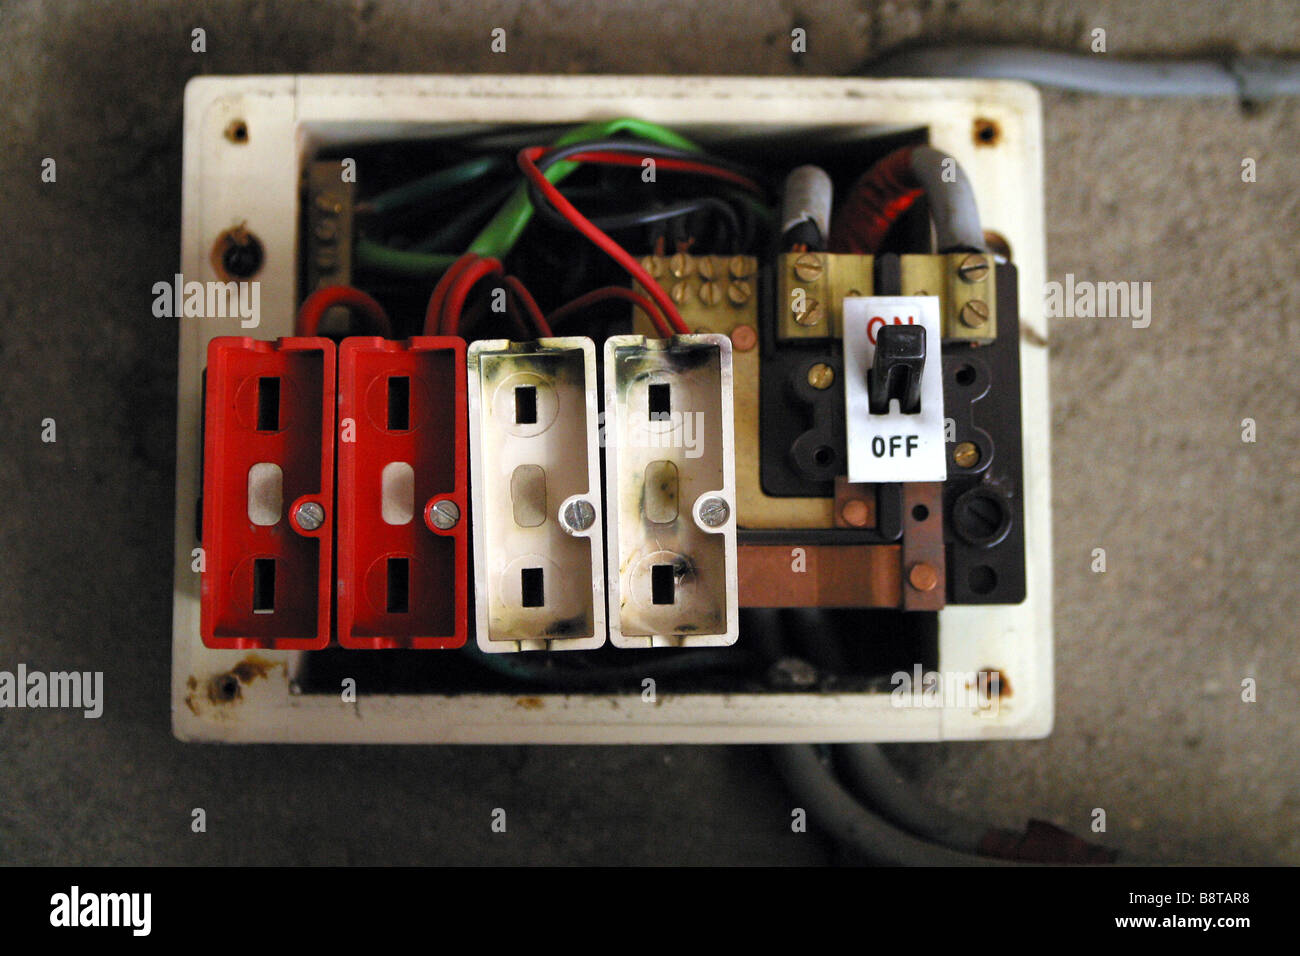 Bus Fuse Box Wiring Library Split Load Consumer Unit Diagram Old Home Schematics Boxes For Homes